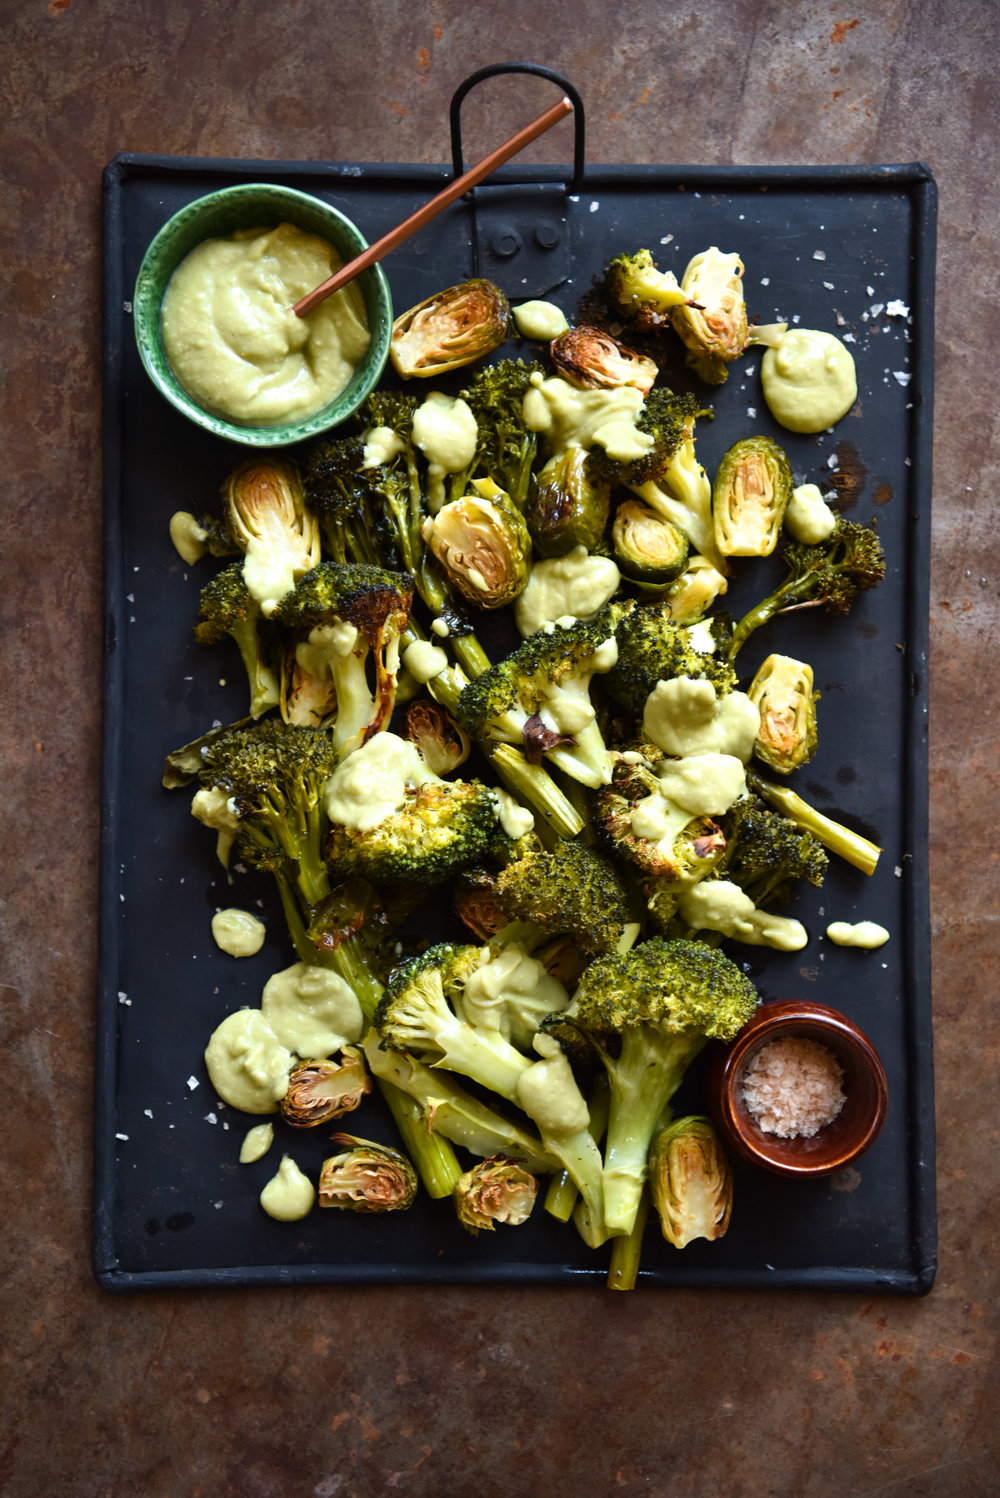 Roasted greens with avocado, wasabi and lime dressing — George Eats